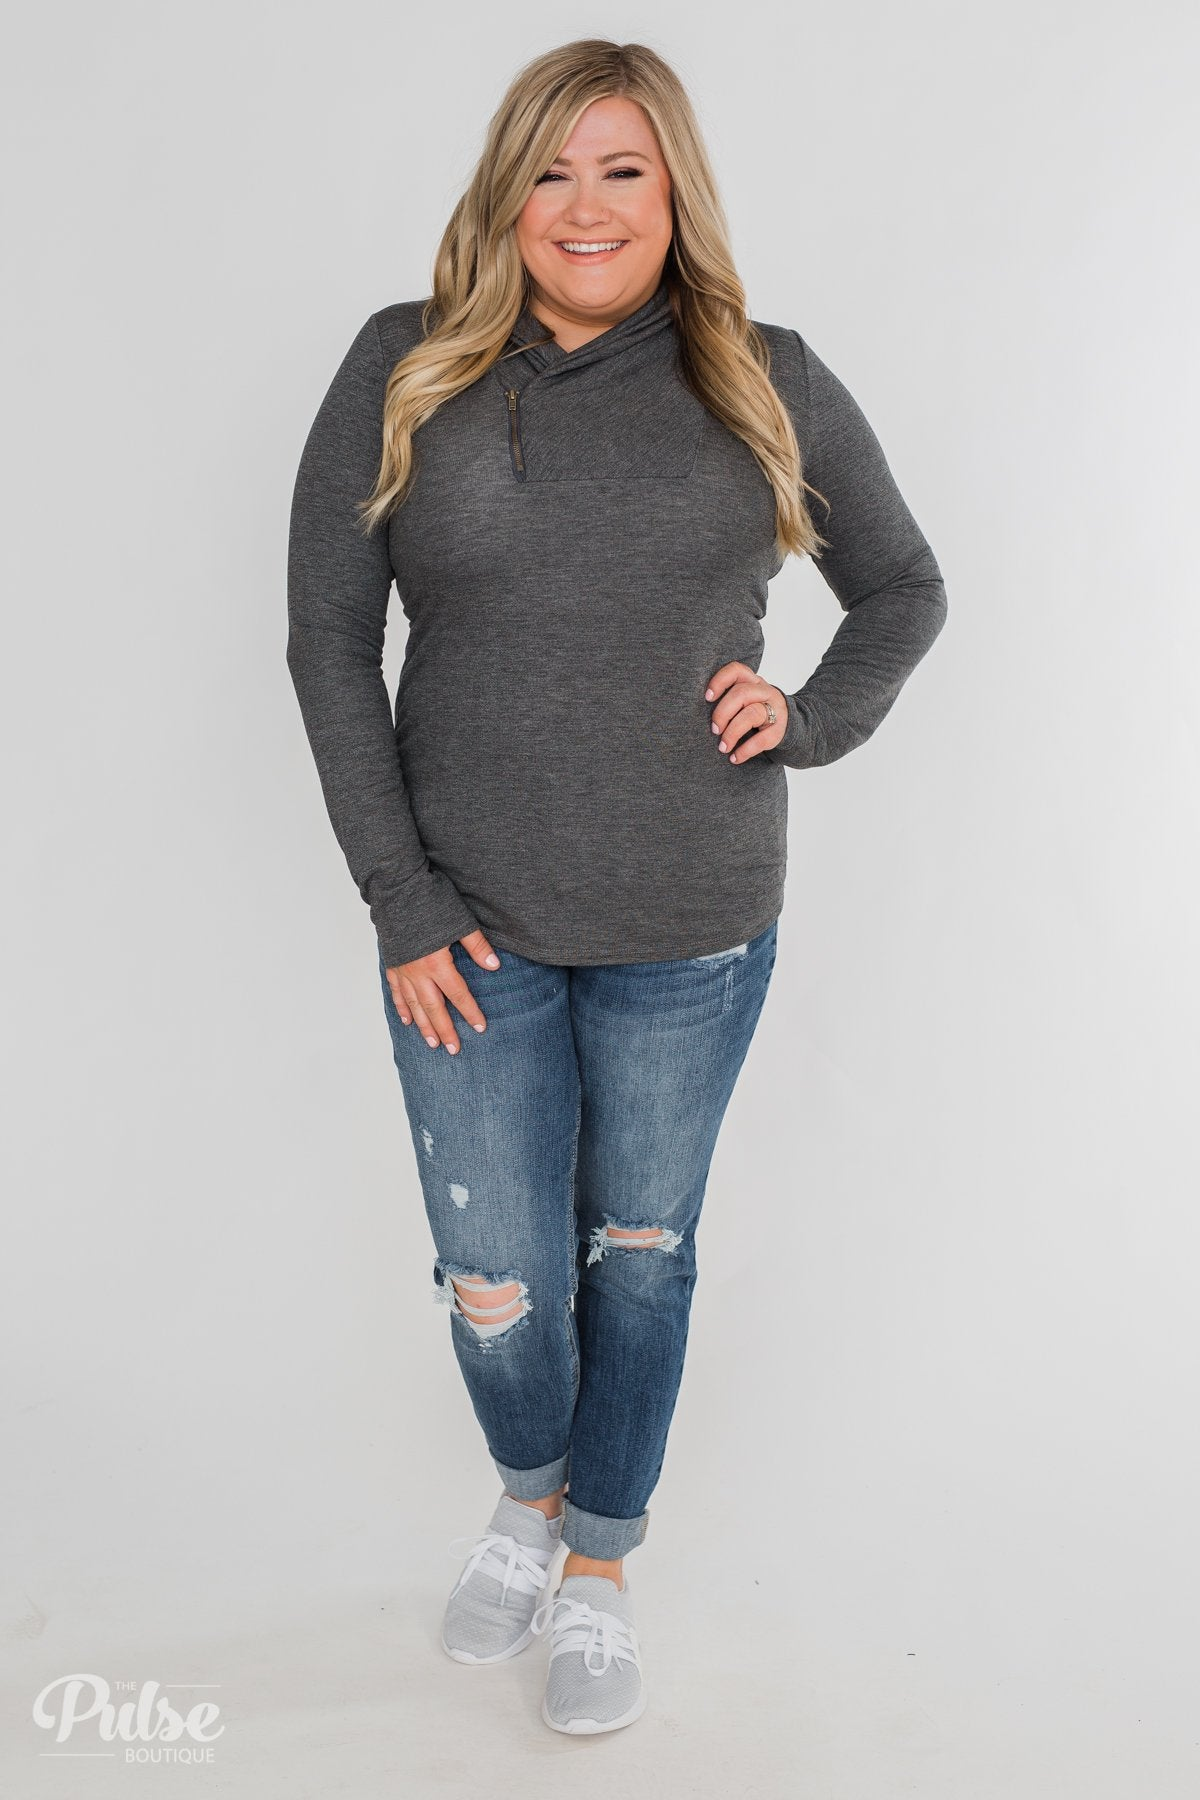 Give Me Time Zipper Pullover Top- Charcoal